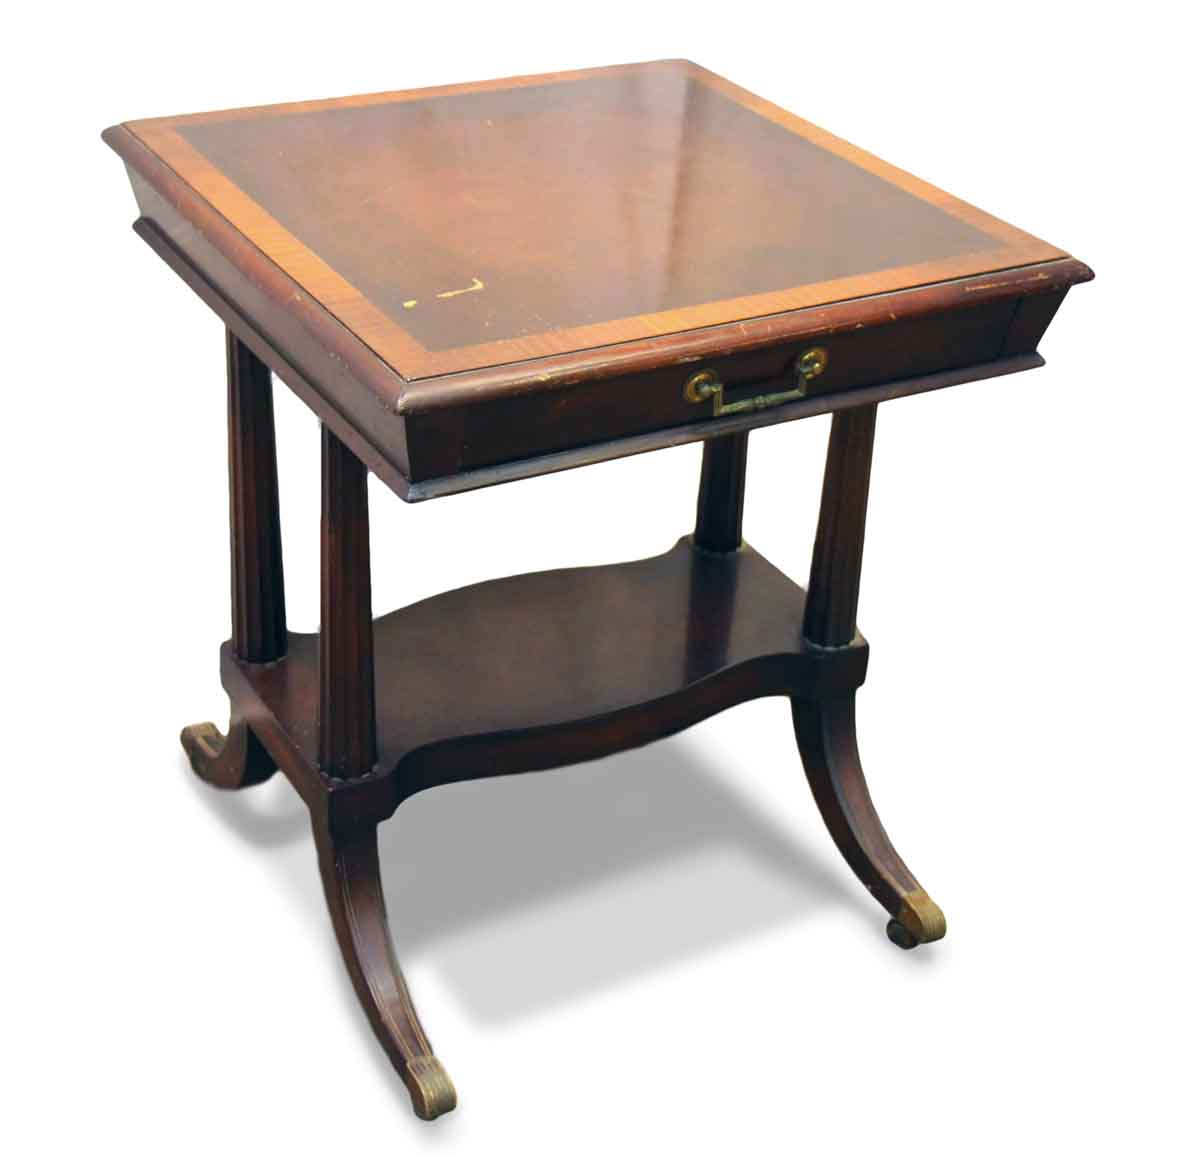 Antique wooden side table with duncan phyfe style legs - Antique side tables for living room ...